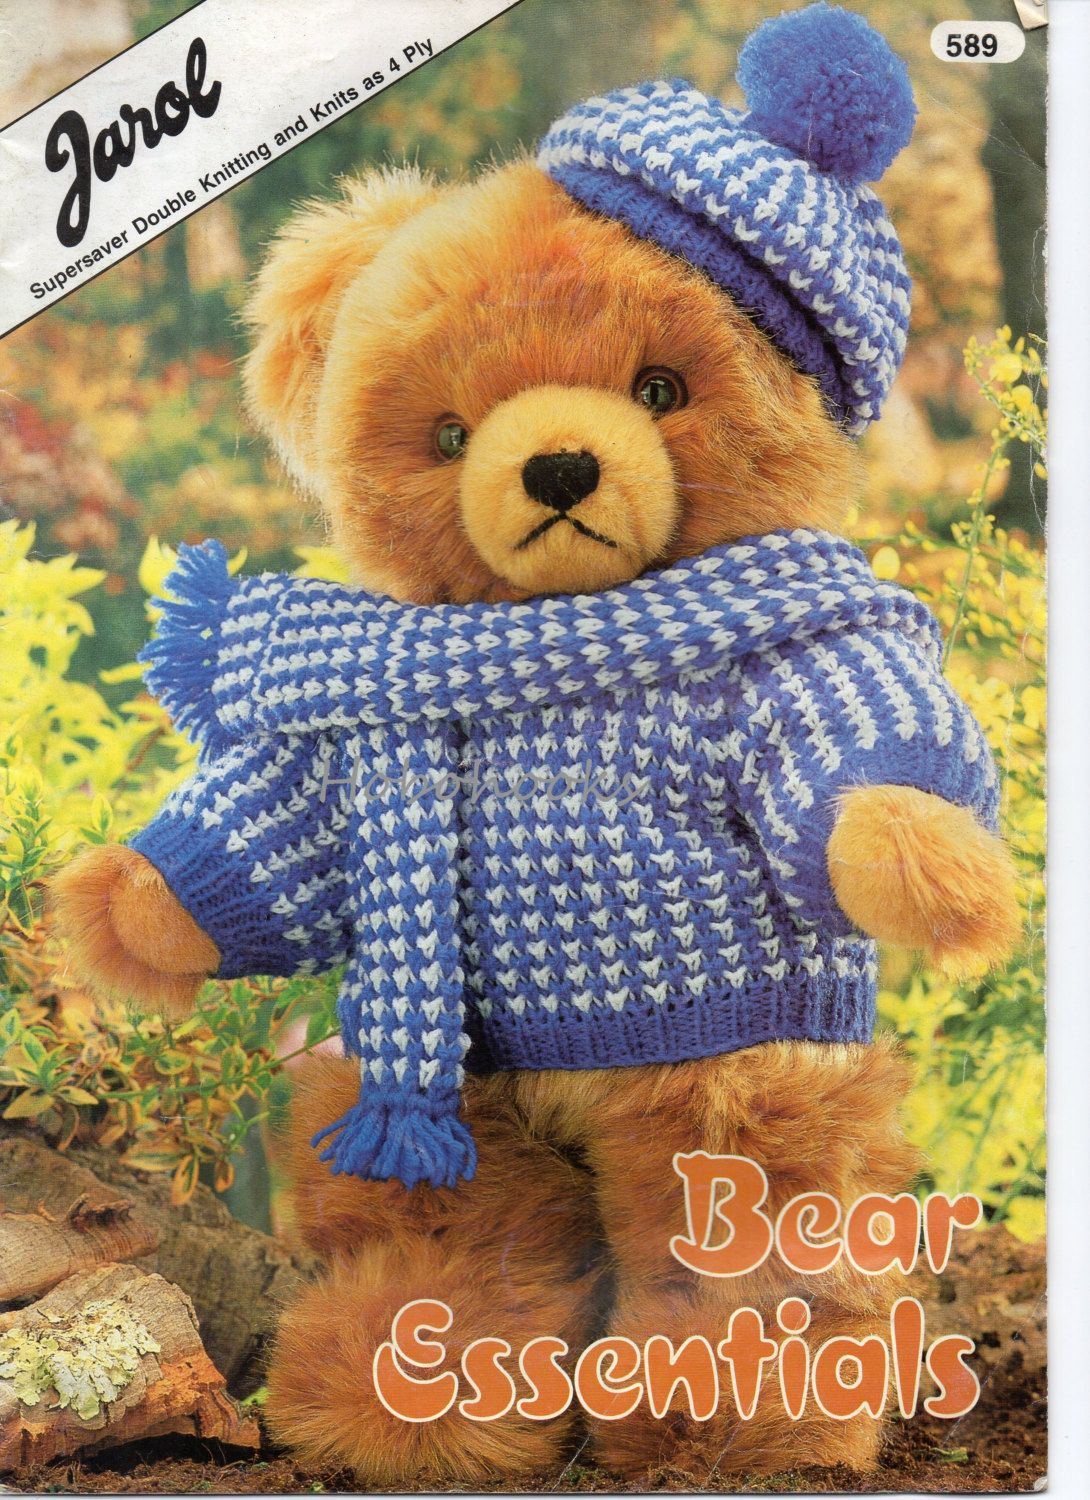 Teddy bear clothes patterns teddy outfits teddy clothes 10 styles teddy bear clothes patterns teddy outfits teddy clothes 10 styles 3843 and 48 cm high teddy bear knitting pattern pdf instant download bankloansurffo Gallery